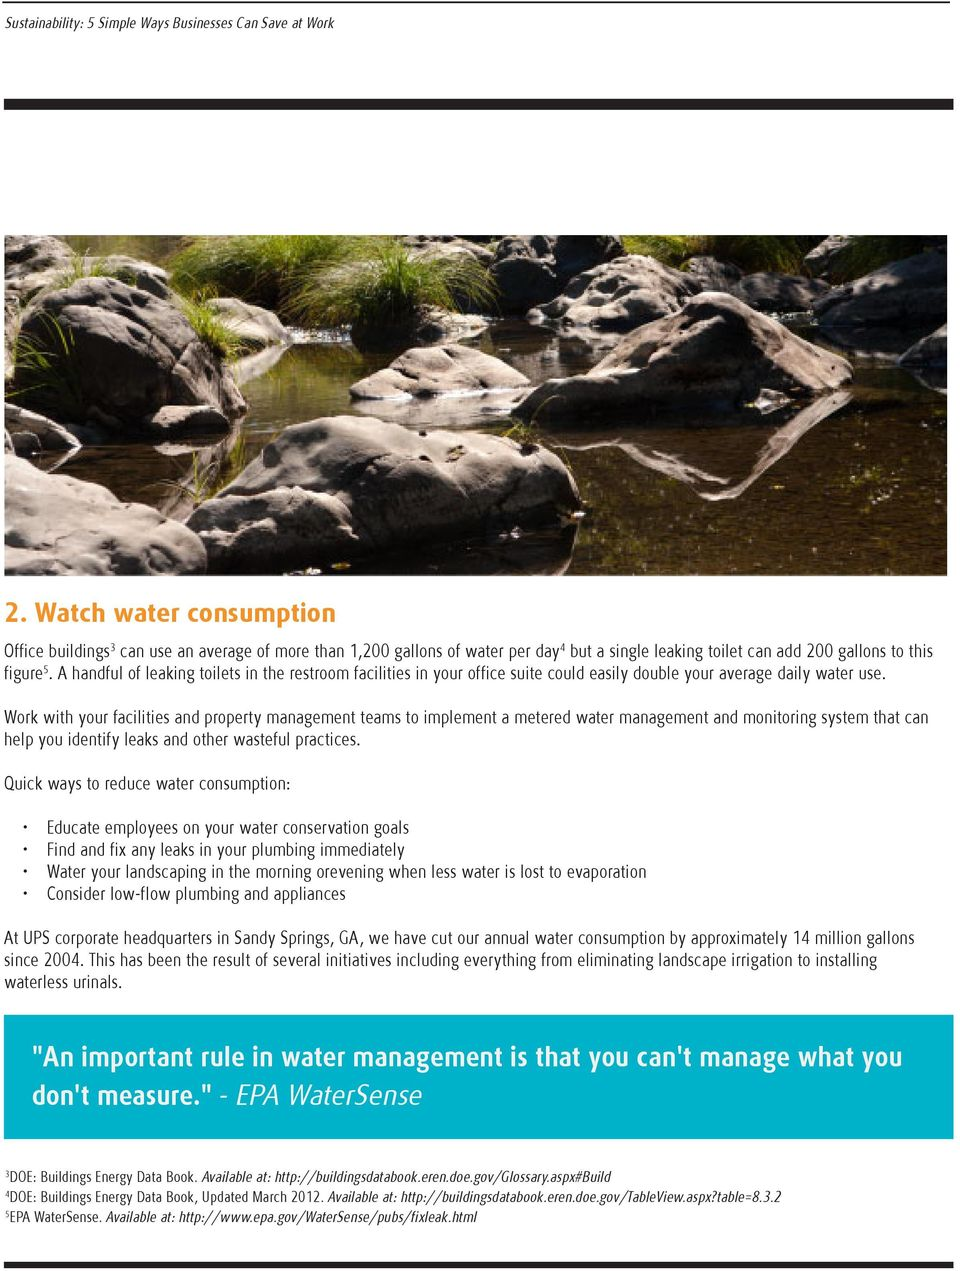 Work with your facilities and property management teams to implement a metered water management and monitoring system that can help you identify leaks and other wasteful practices.